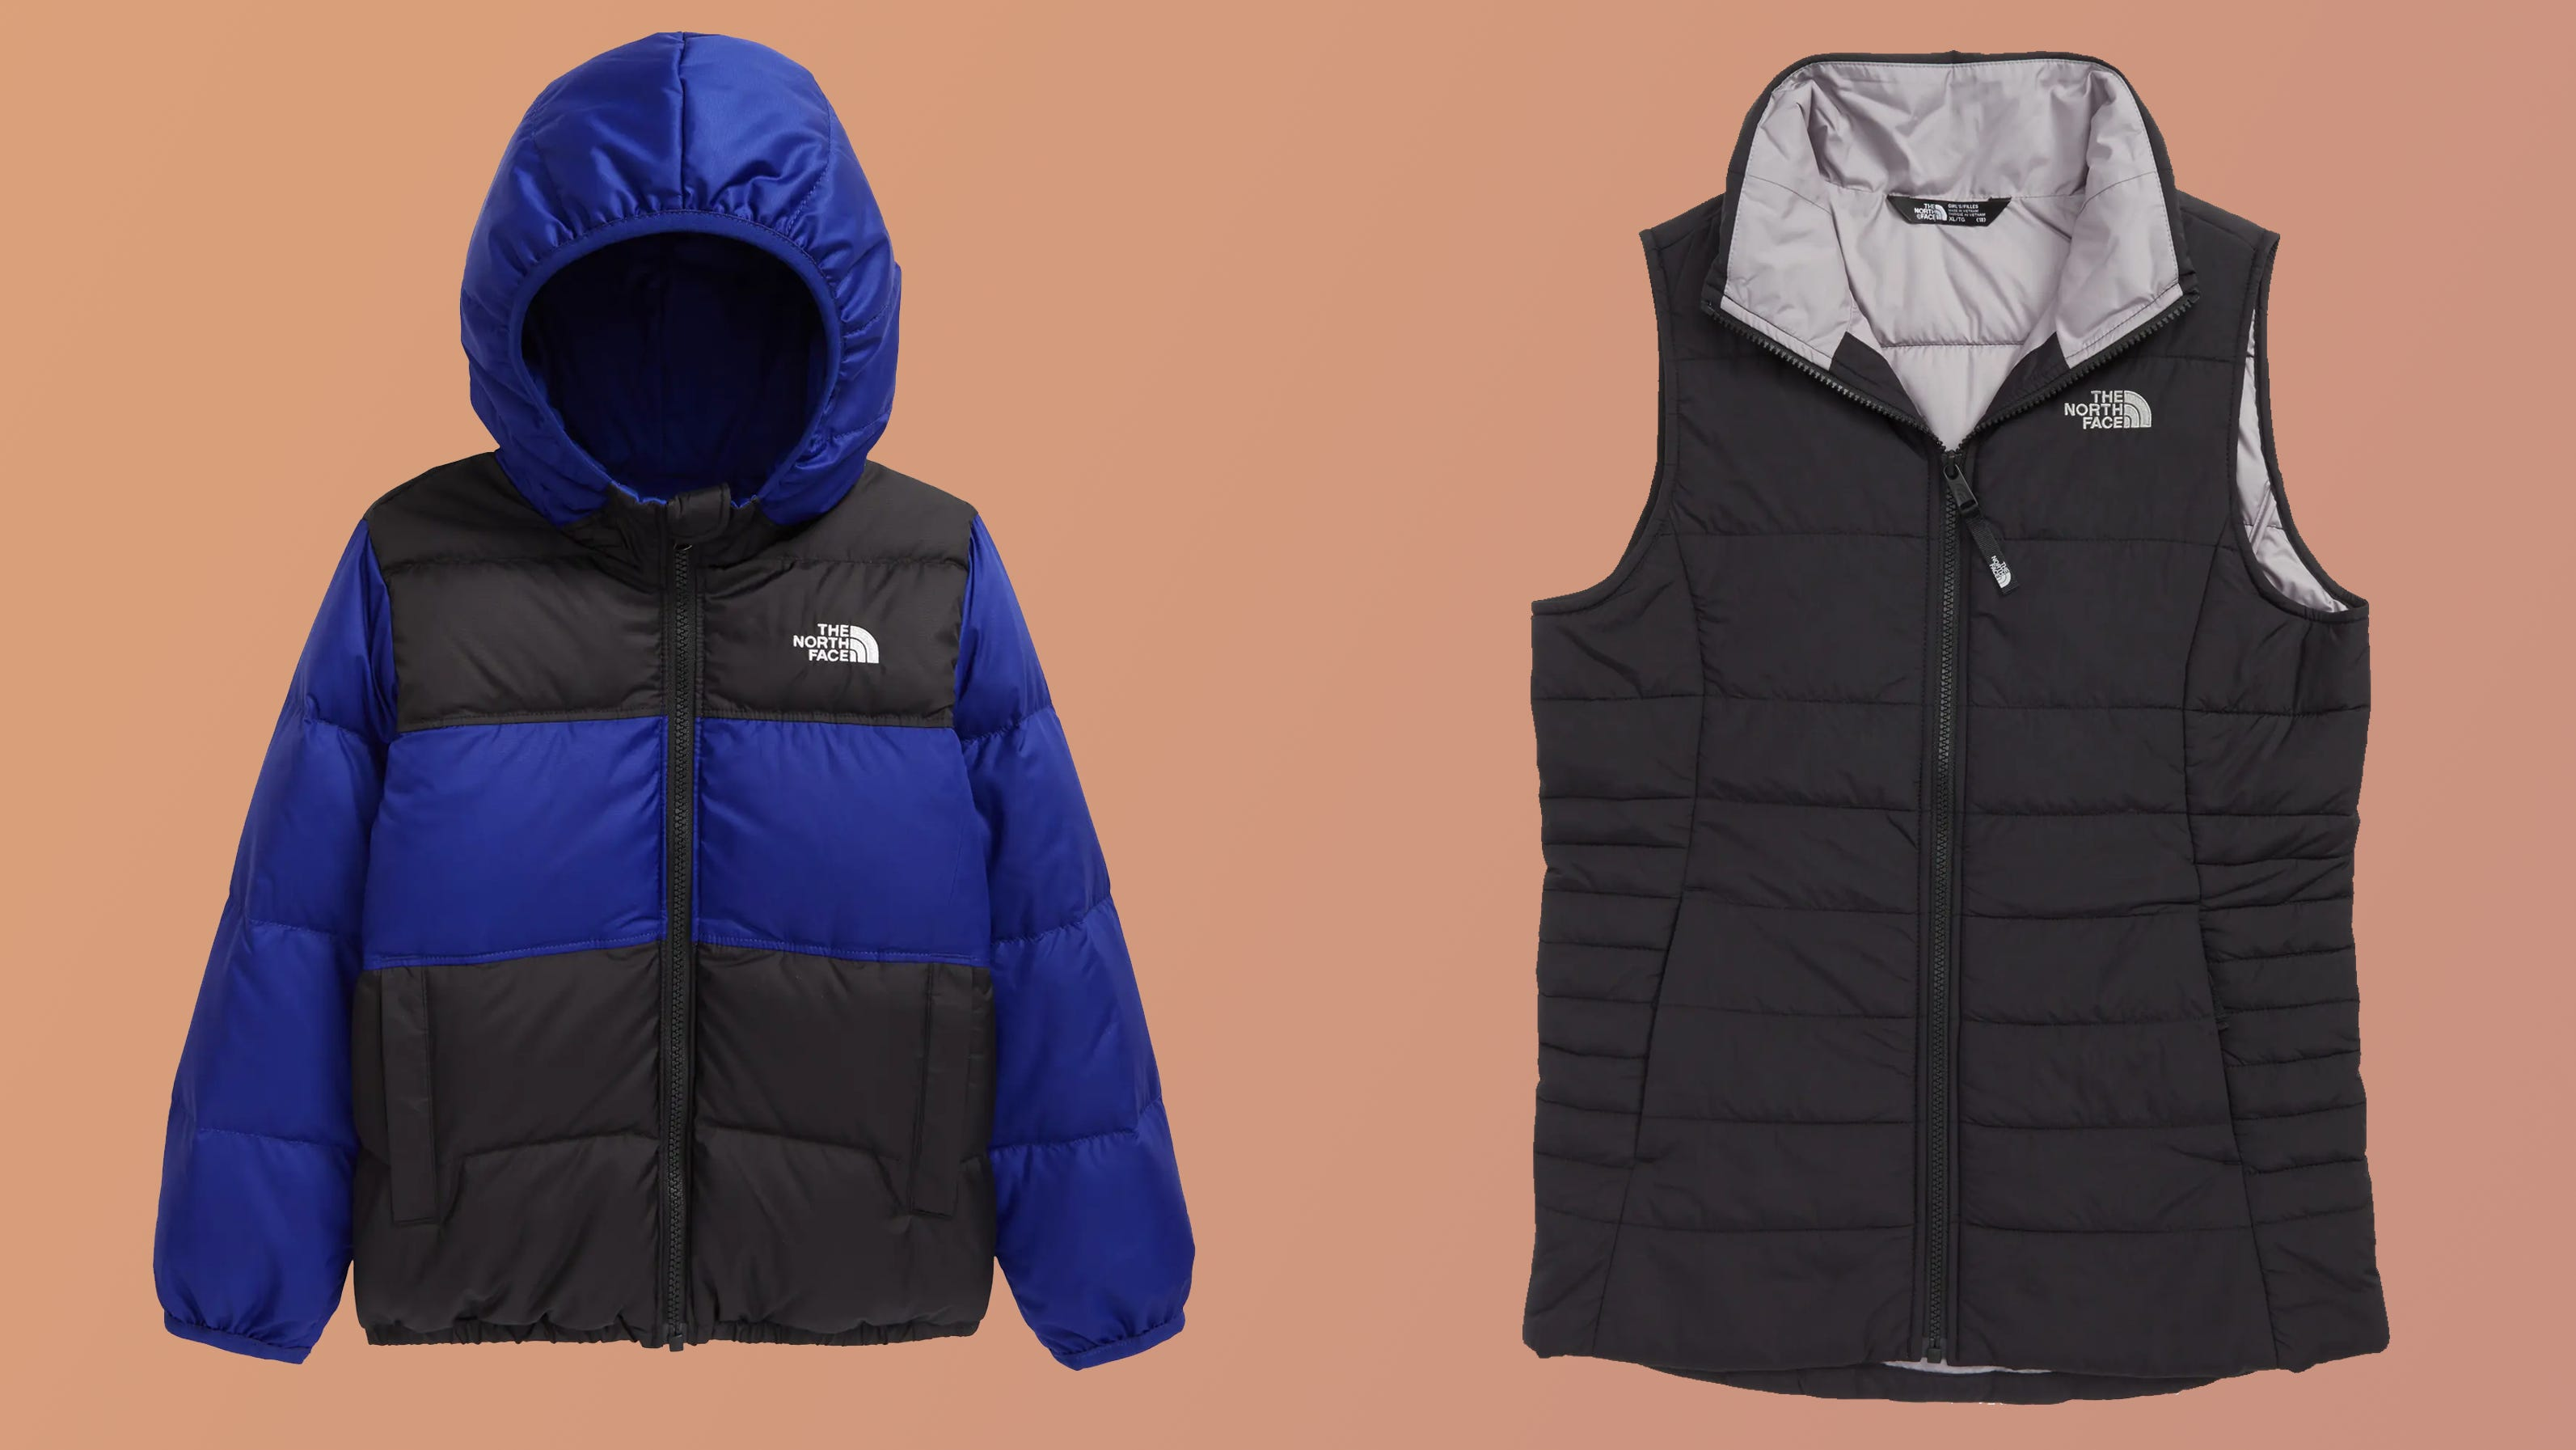 You can get massive discounts on The North Face at the Nordstrom Anniversary Sale